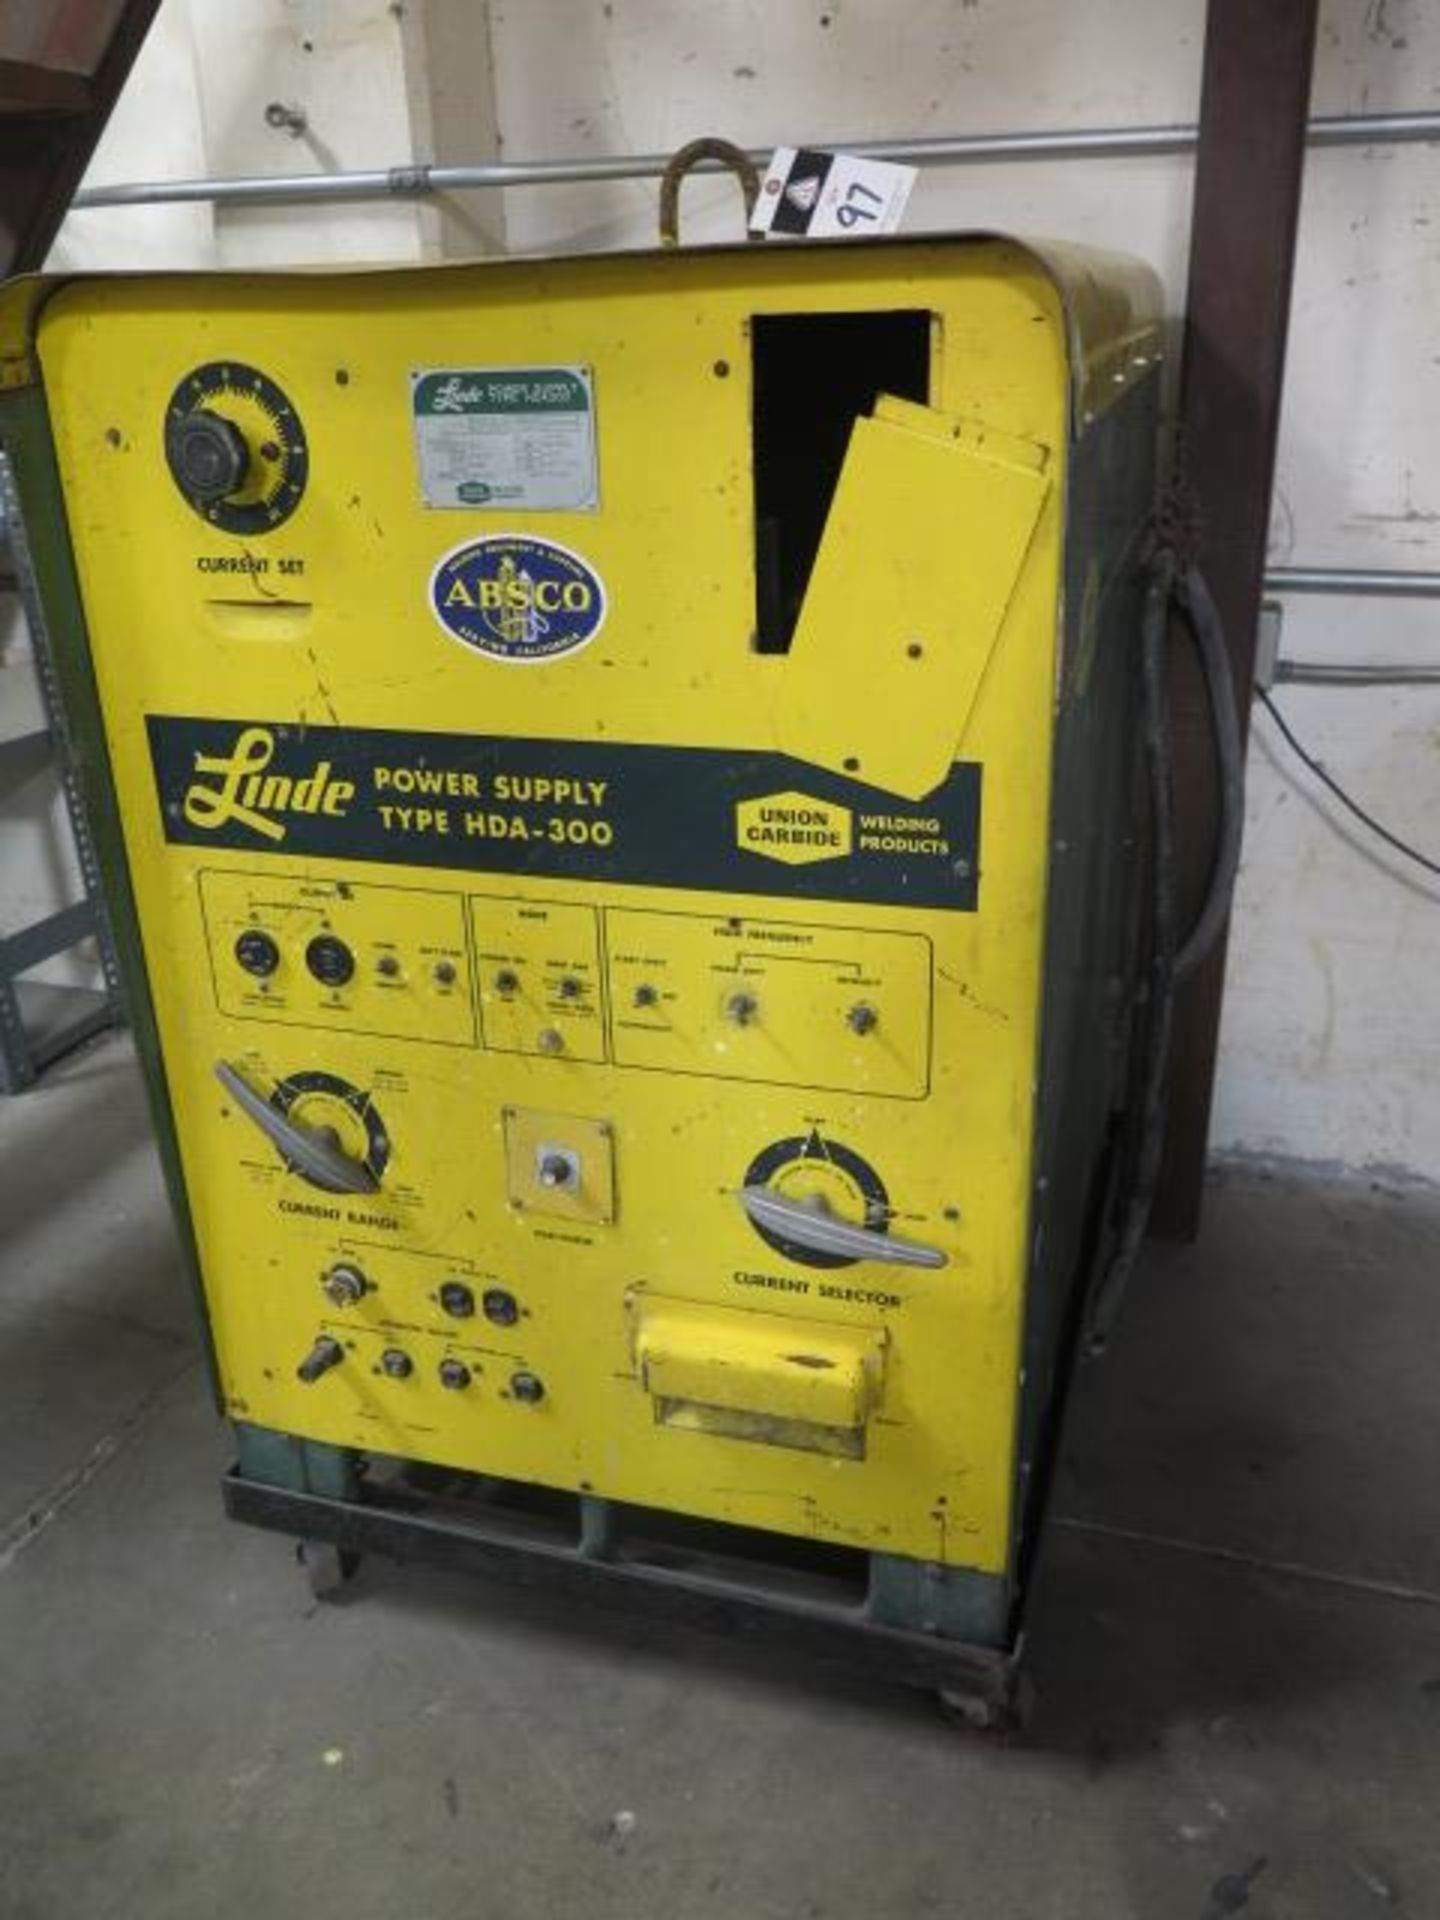 Linde HAD-300 AC/DC Arc Welding Power Source s/n C-3660800 (SOLD AS-IS - NO WARRANTY)